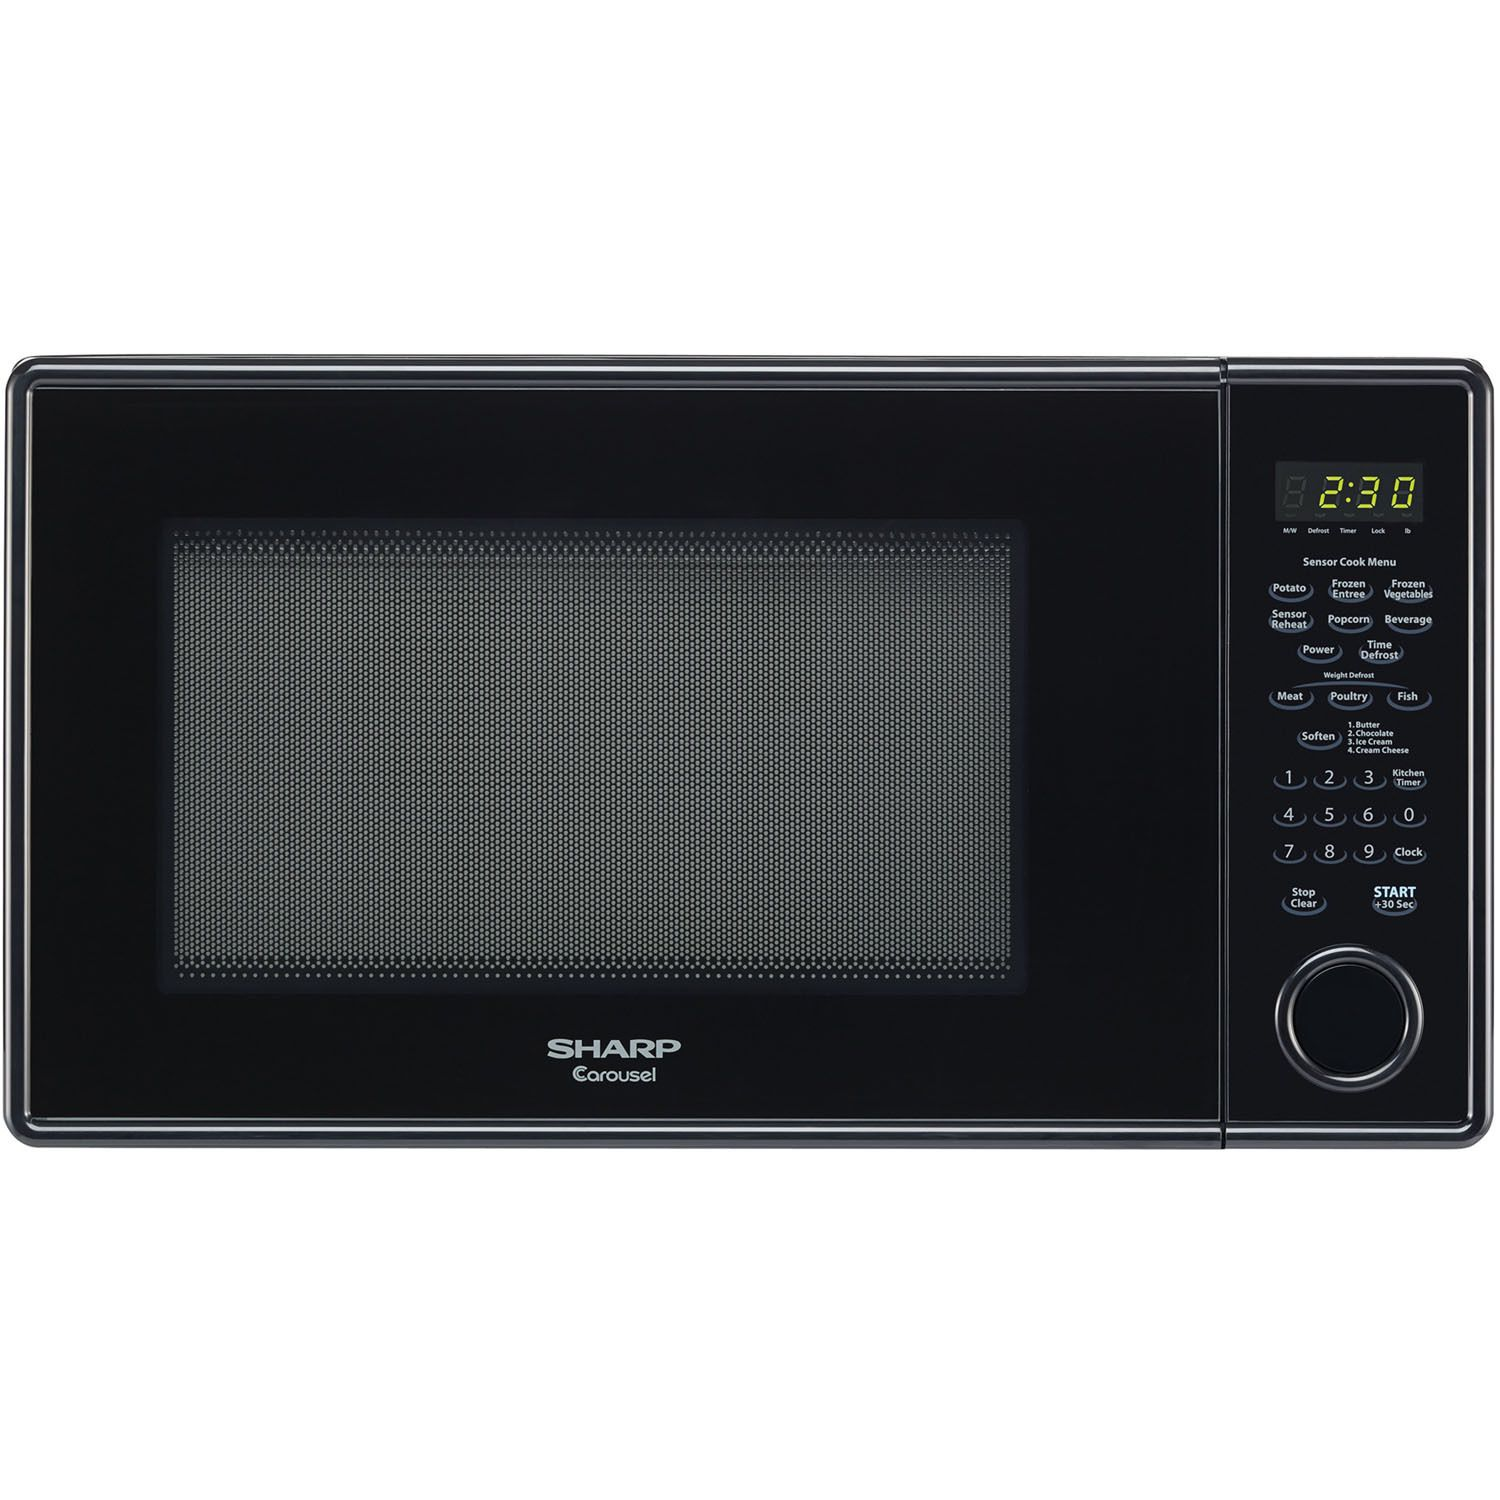 Online Shopping Bedding Furniture Electronics Jewelry Clothing More Countertop Microwave Oven Microwave